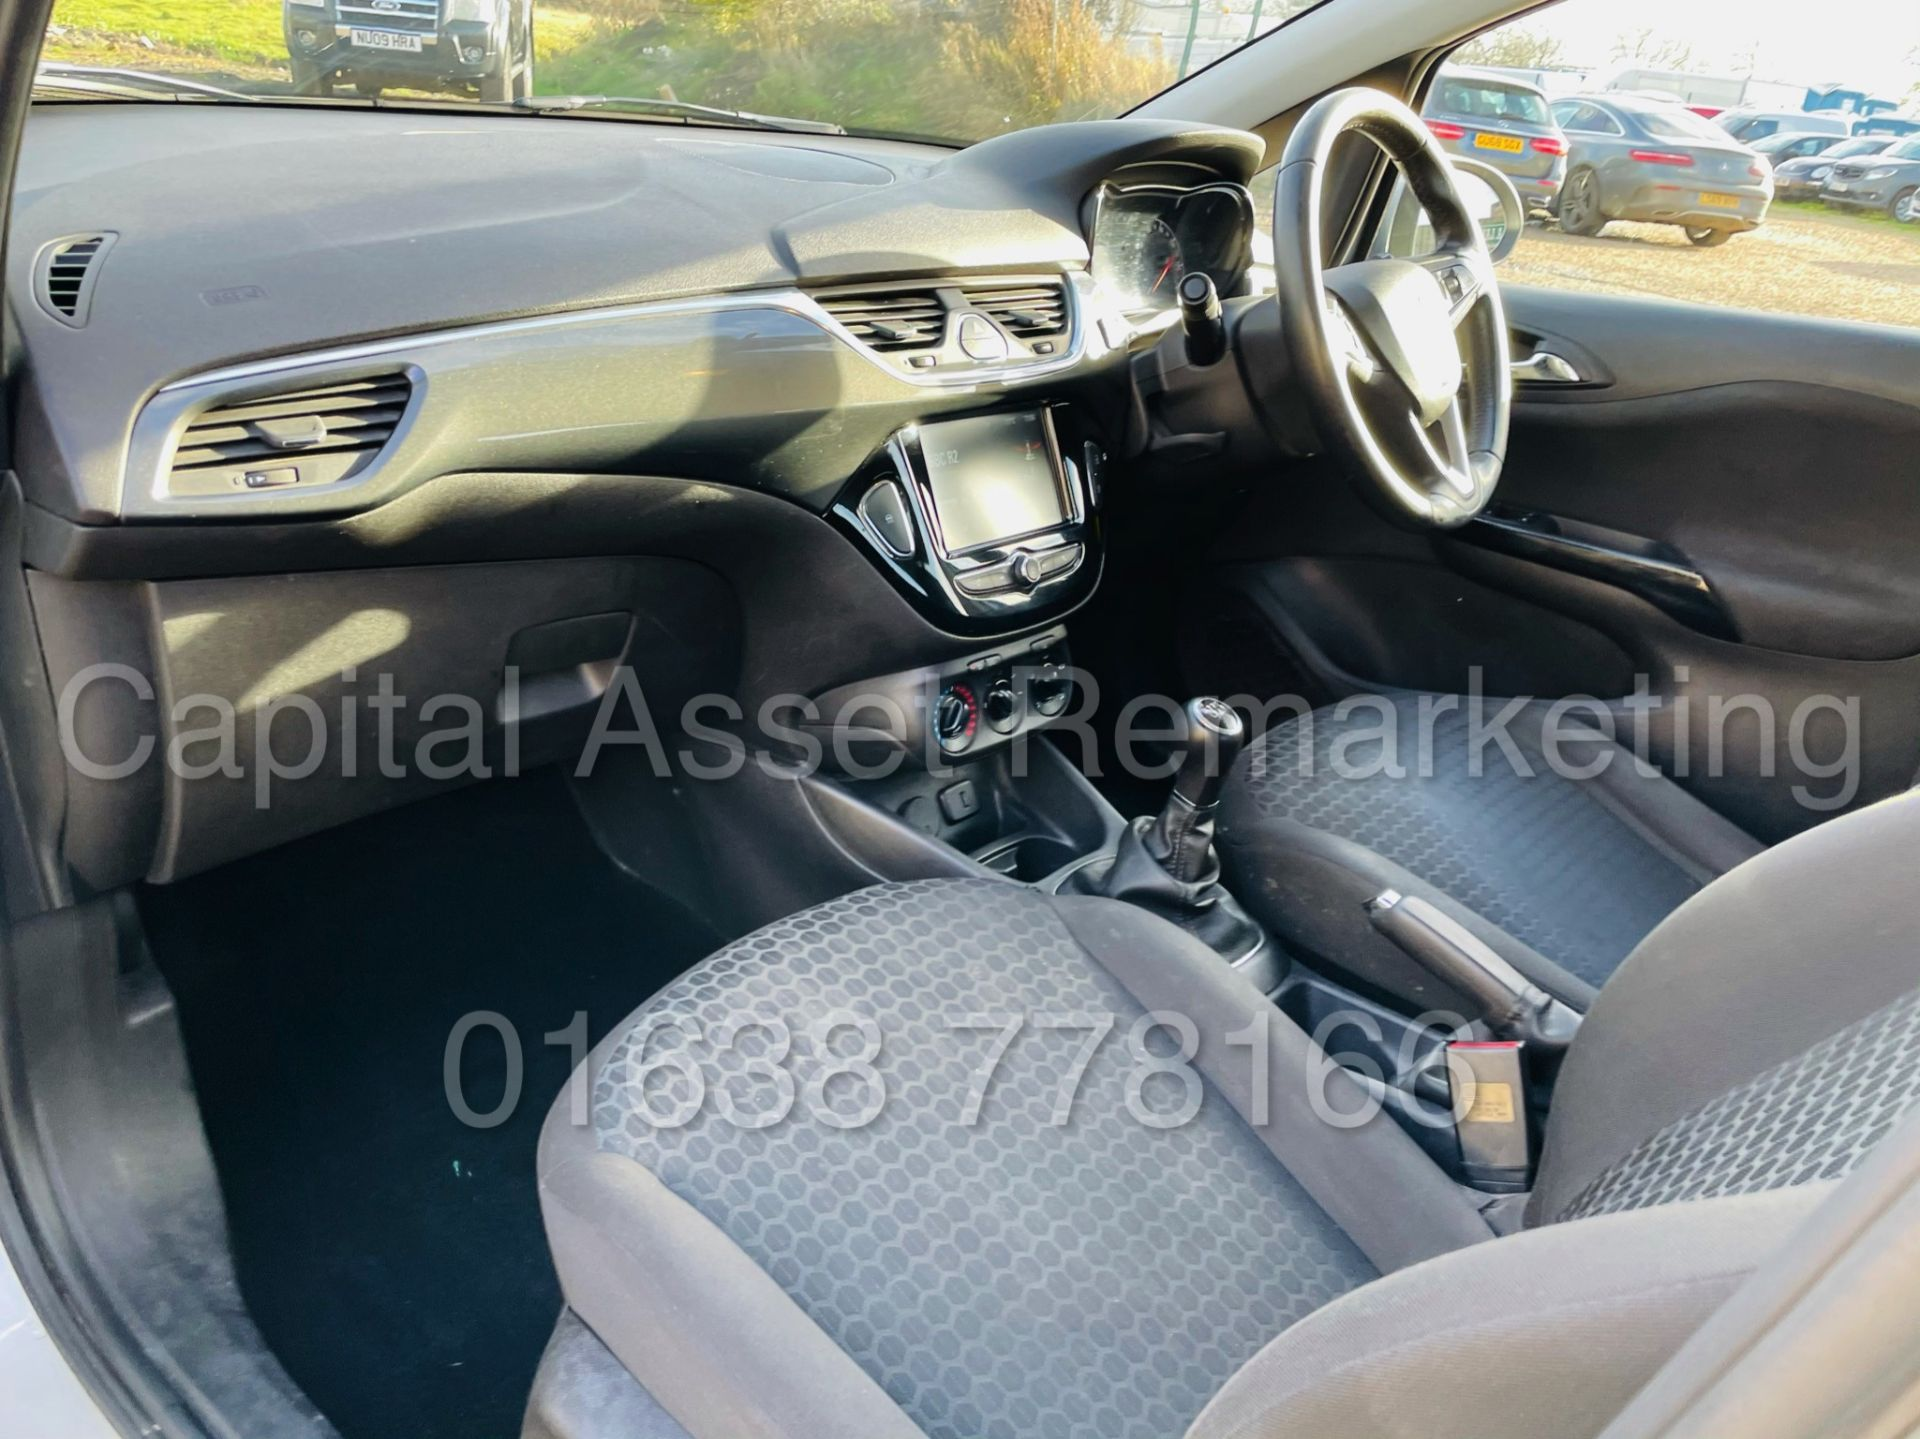 On Sale VAUXHALL CORSA *DESIGN EDITION* 5 DOOR HATCHBACK (2019 - NEW MODEL) 1.4 PETROL - (1 OWNER) - Image 20 of 42